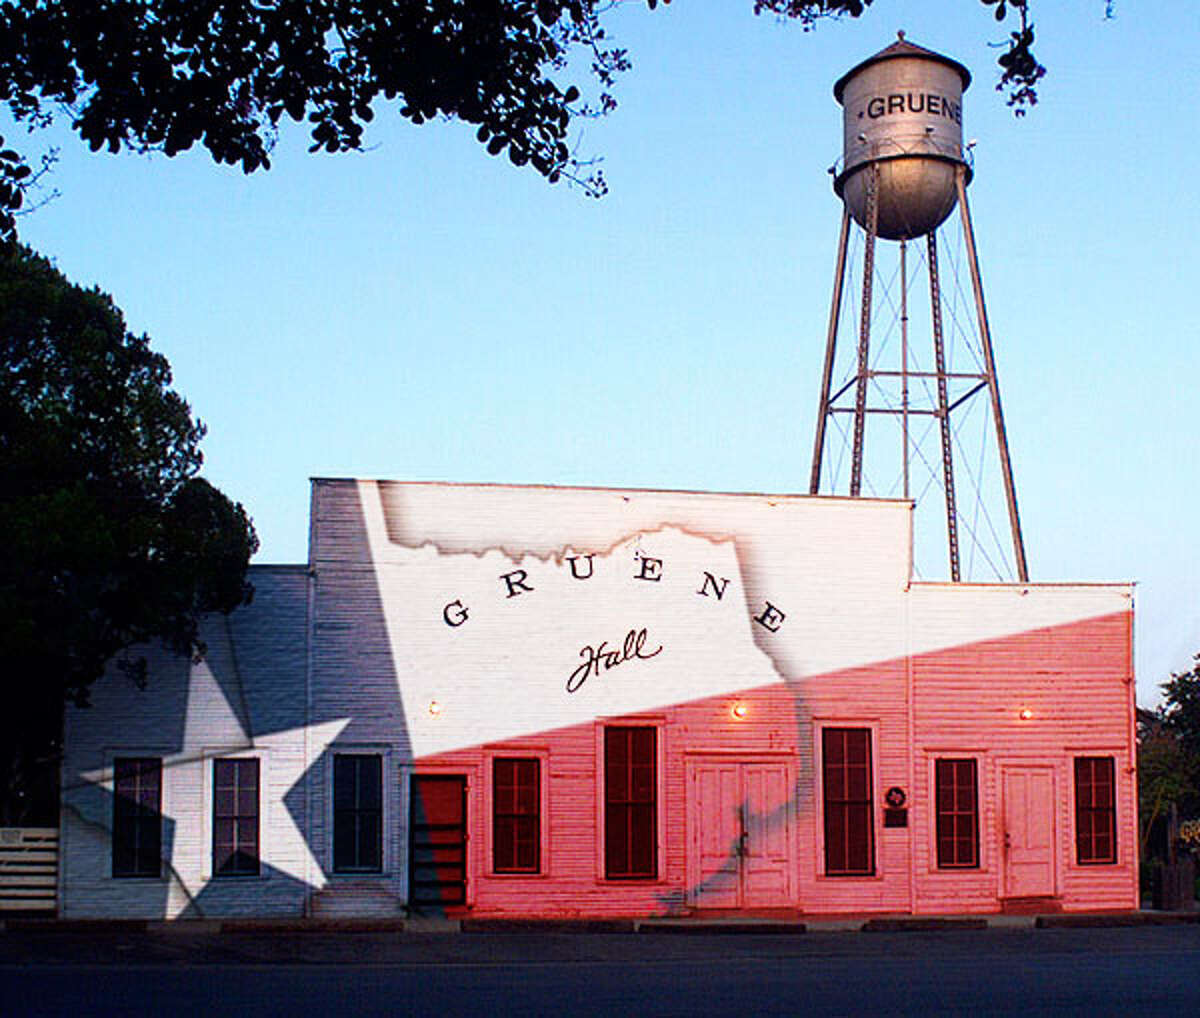 New Braunfels attraction: Gruene HallOne of the oldest dance halls in the country, the iconic spot offers family fun.